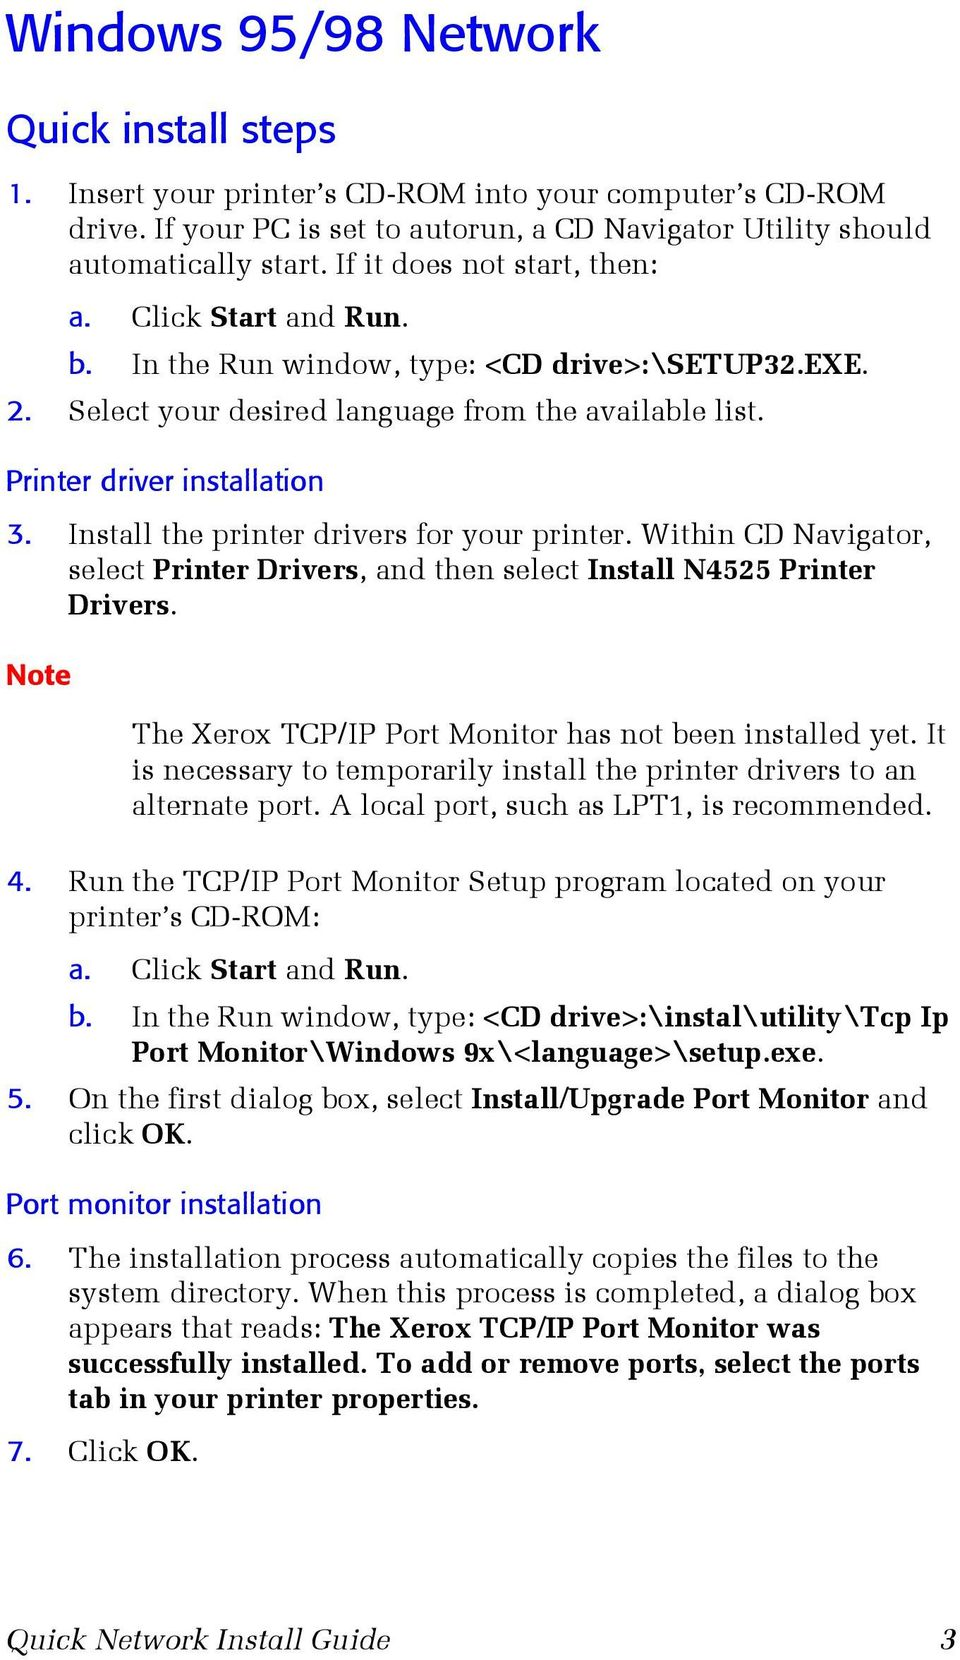 Install the printer drivers for your printer. Within CD Navigator, select Printer Drivers, and then select Install N4525 Printer Drivers. Note The Xerox TCP/IP Port Monitor has not been installed yet.